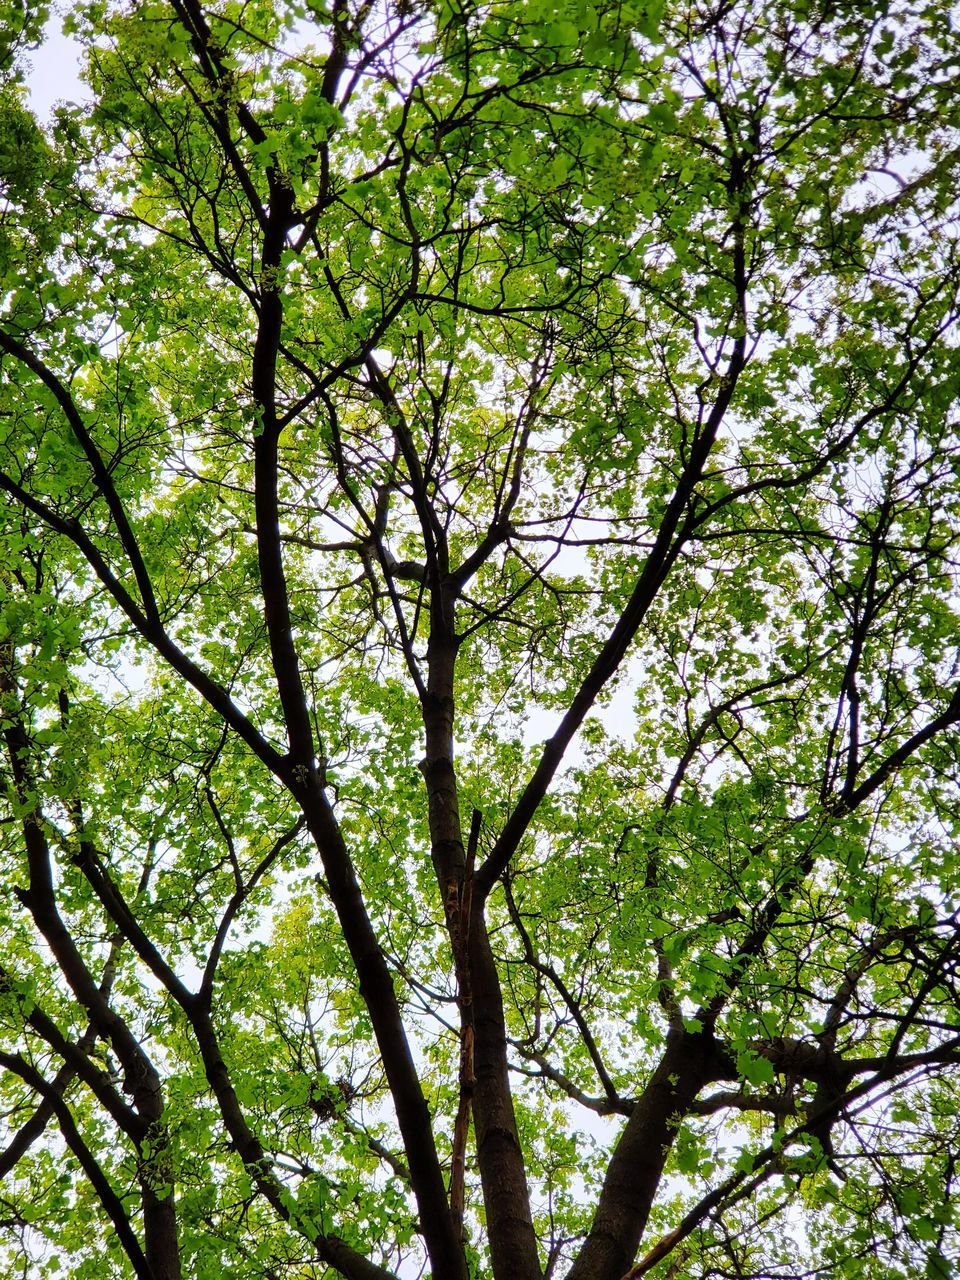 LOW ANGLE VIEW OF TREE IN FOREST